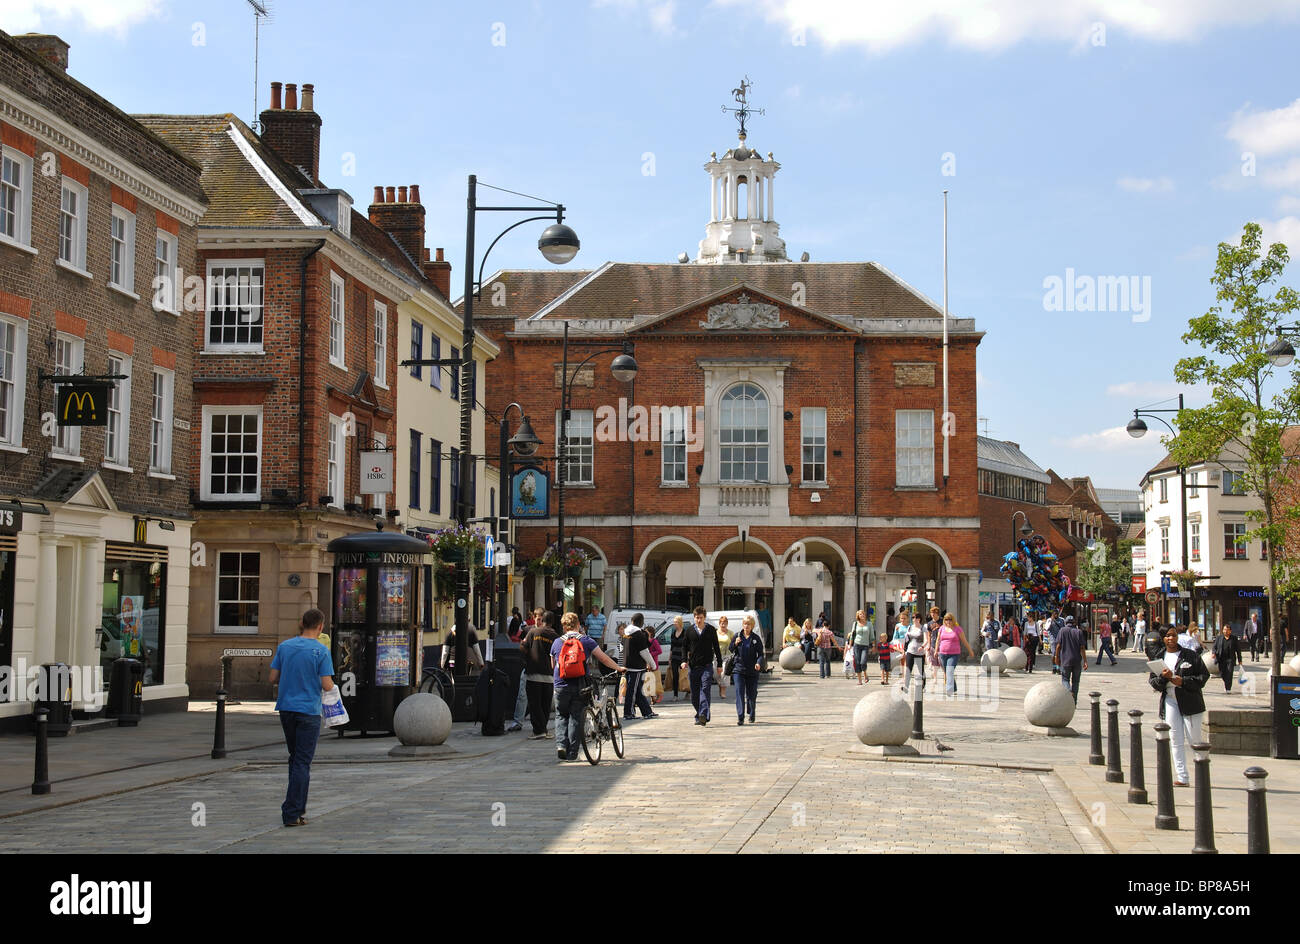 High Street and the Guildhall, High Wycombe, Buckinghamshire, England, UK - Stock Image